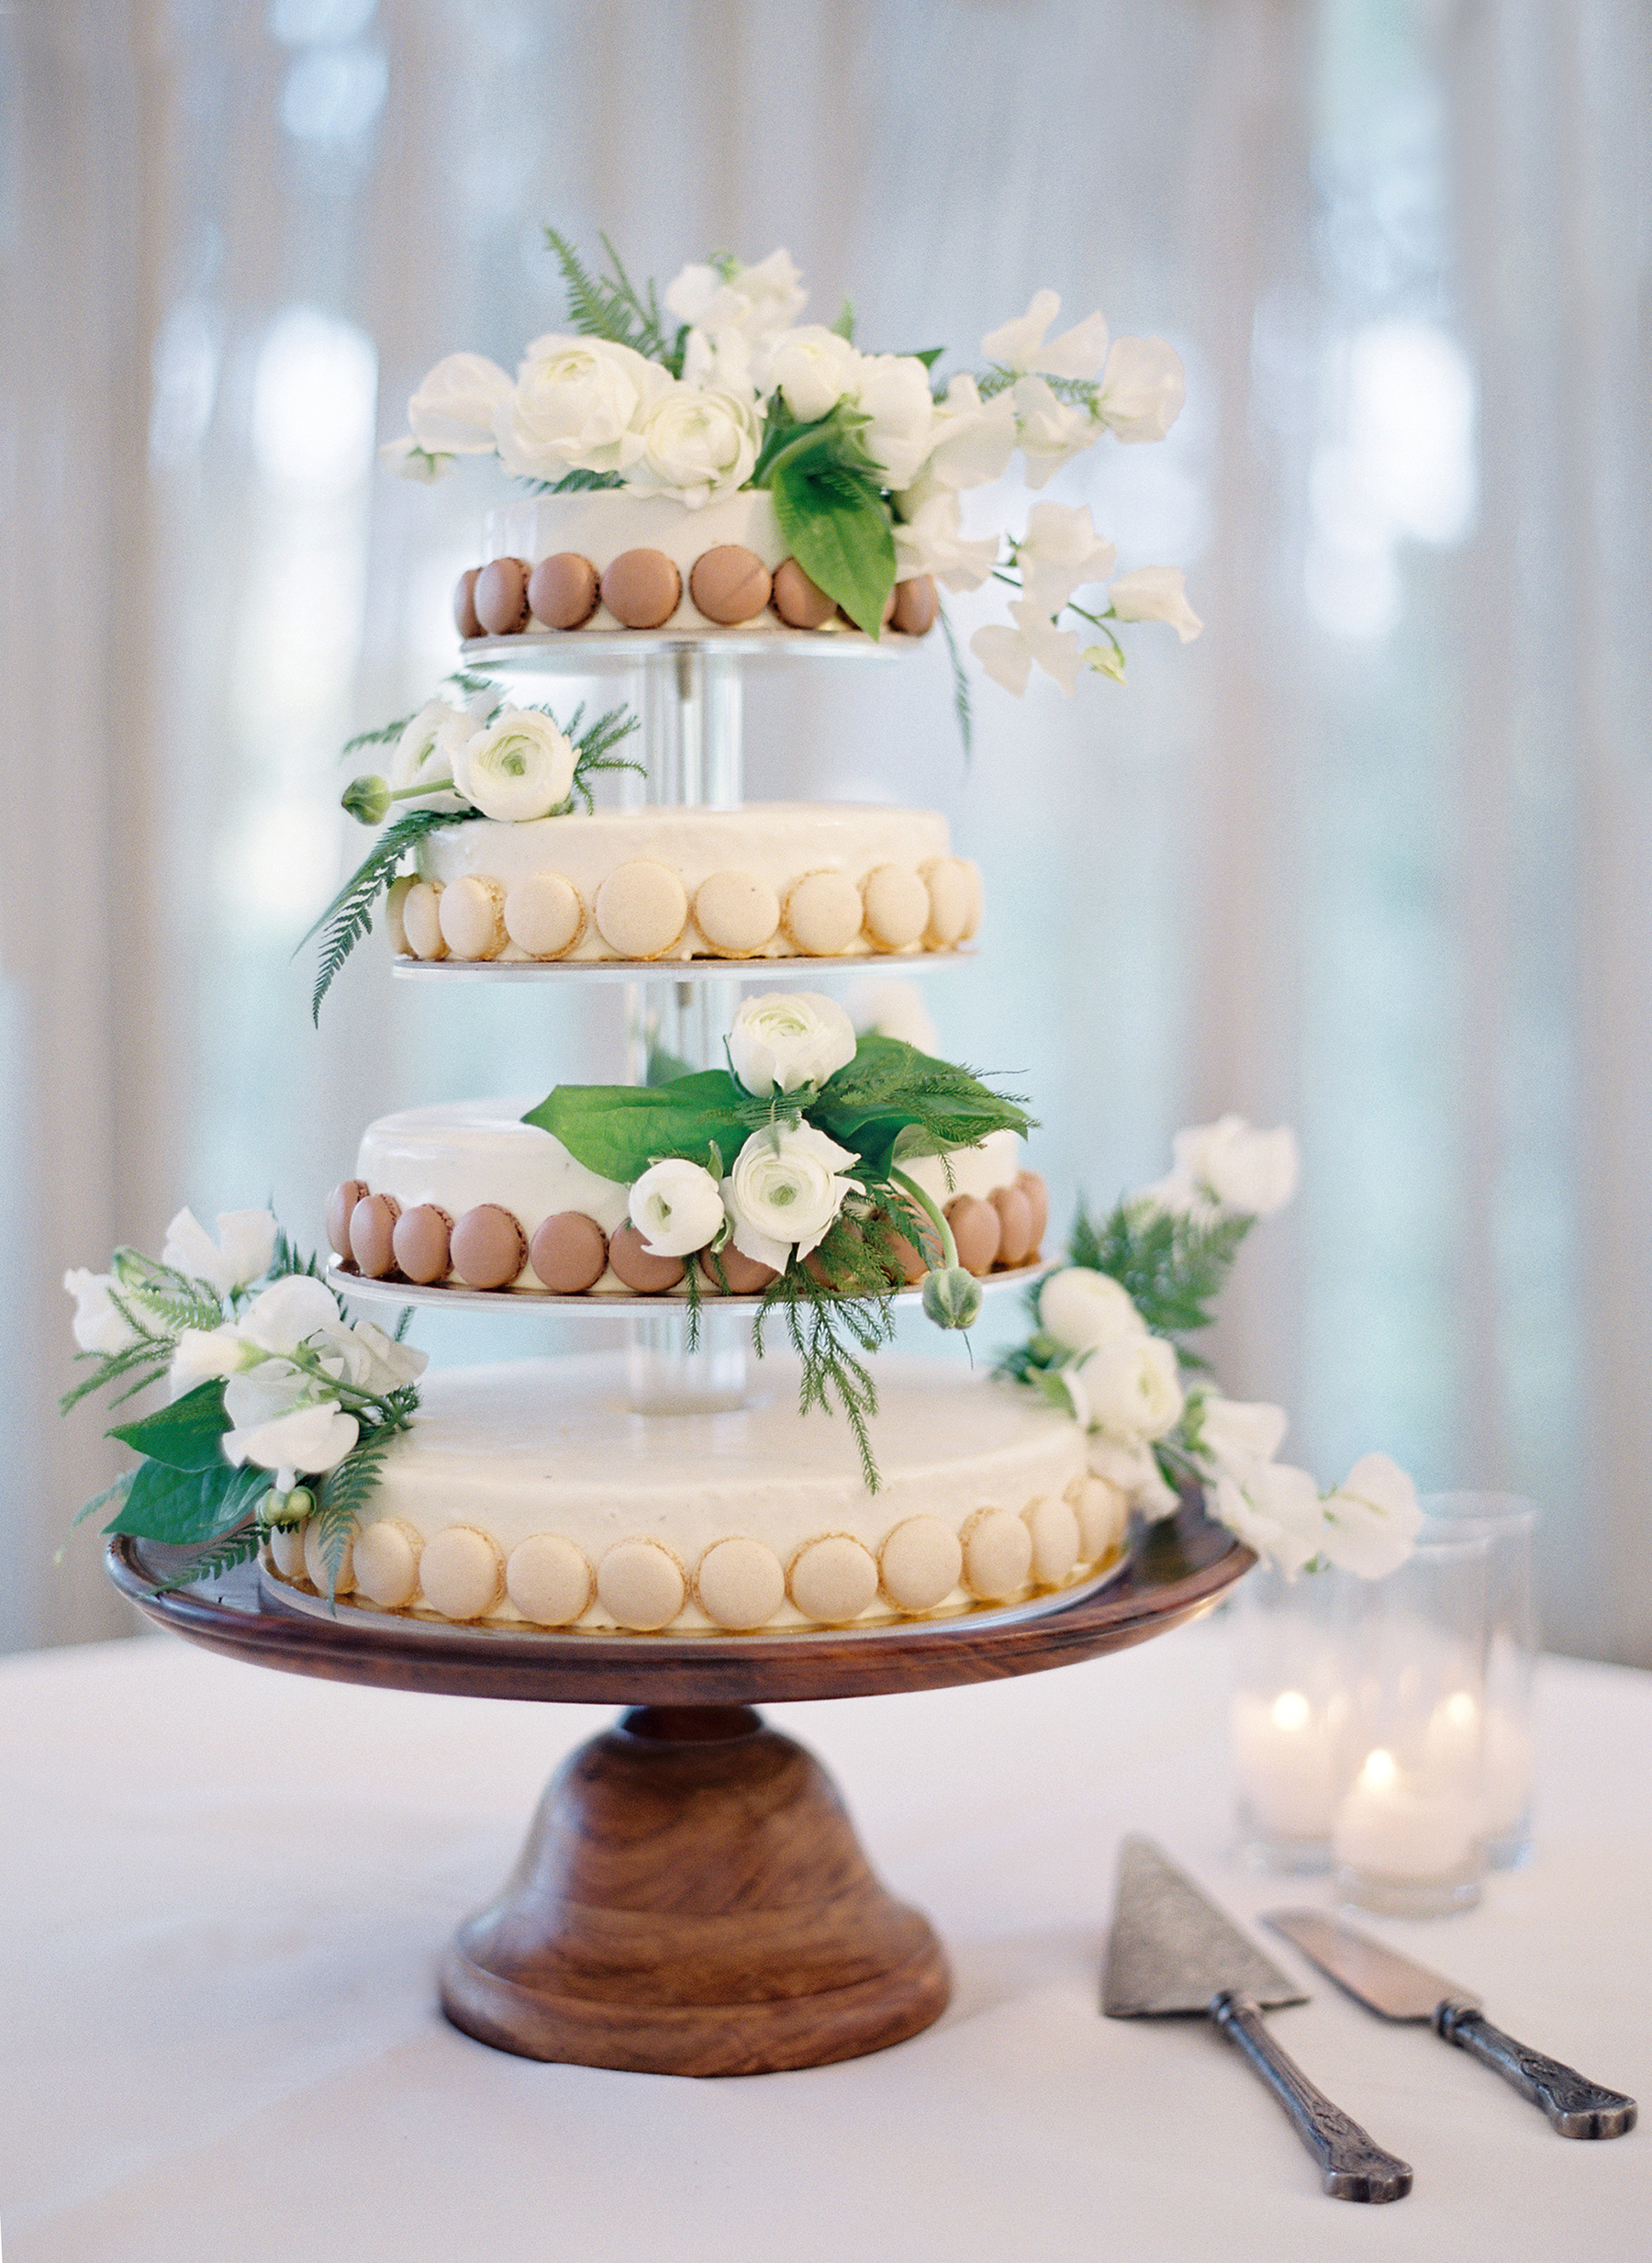 tiered cake with macaron border